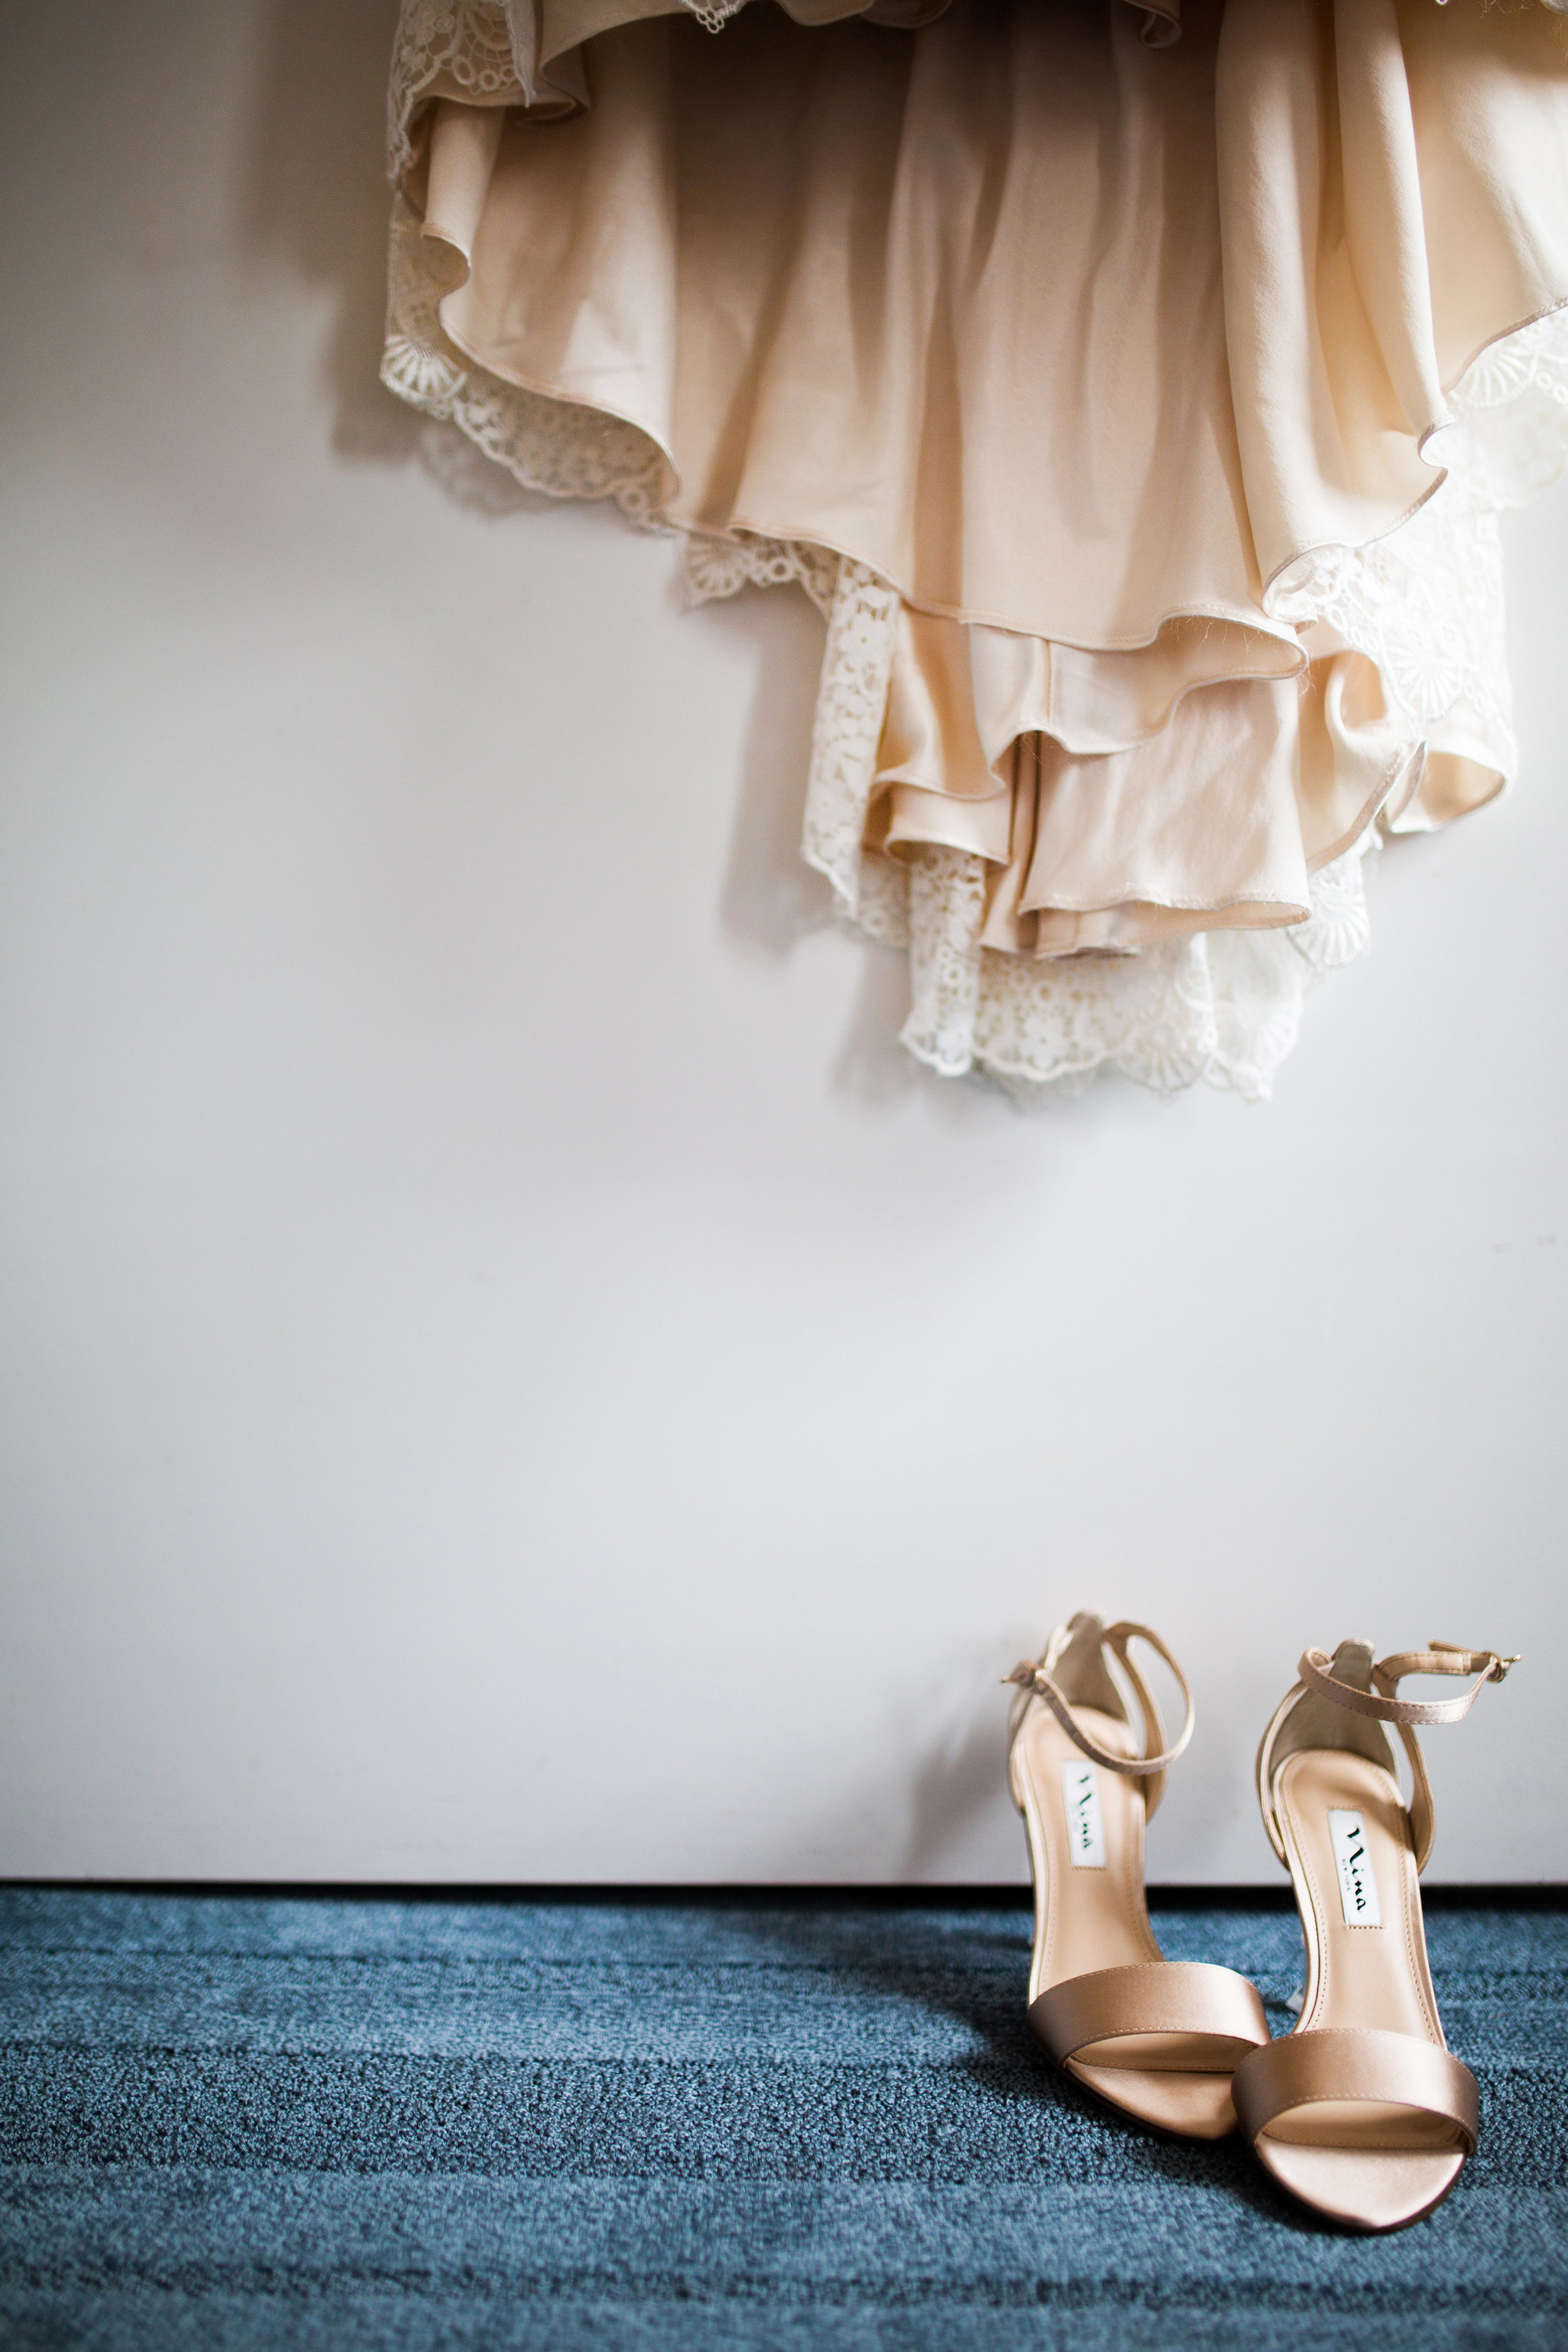 Kaylie + Travis | Sixpence Events wedding planner in the midwest | Studio KH photography | dress and shoes detail shot at the hotel